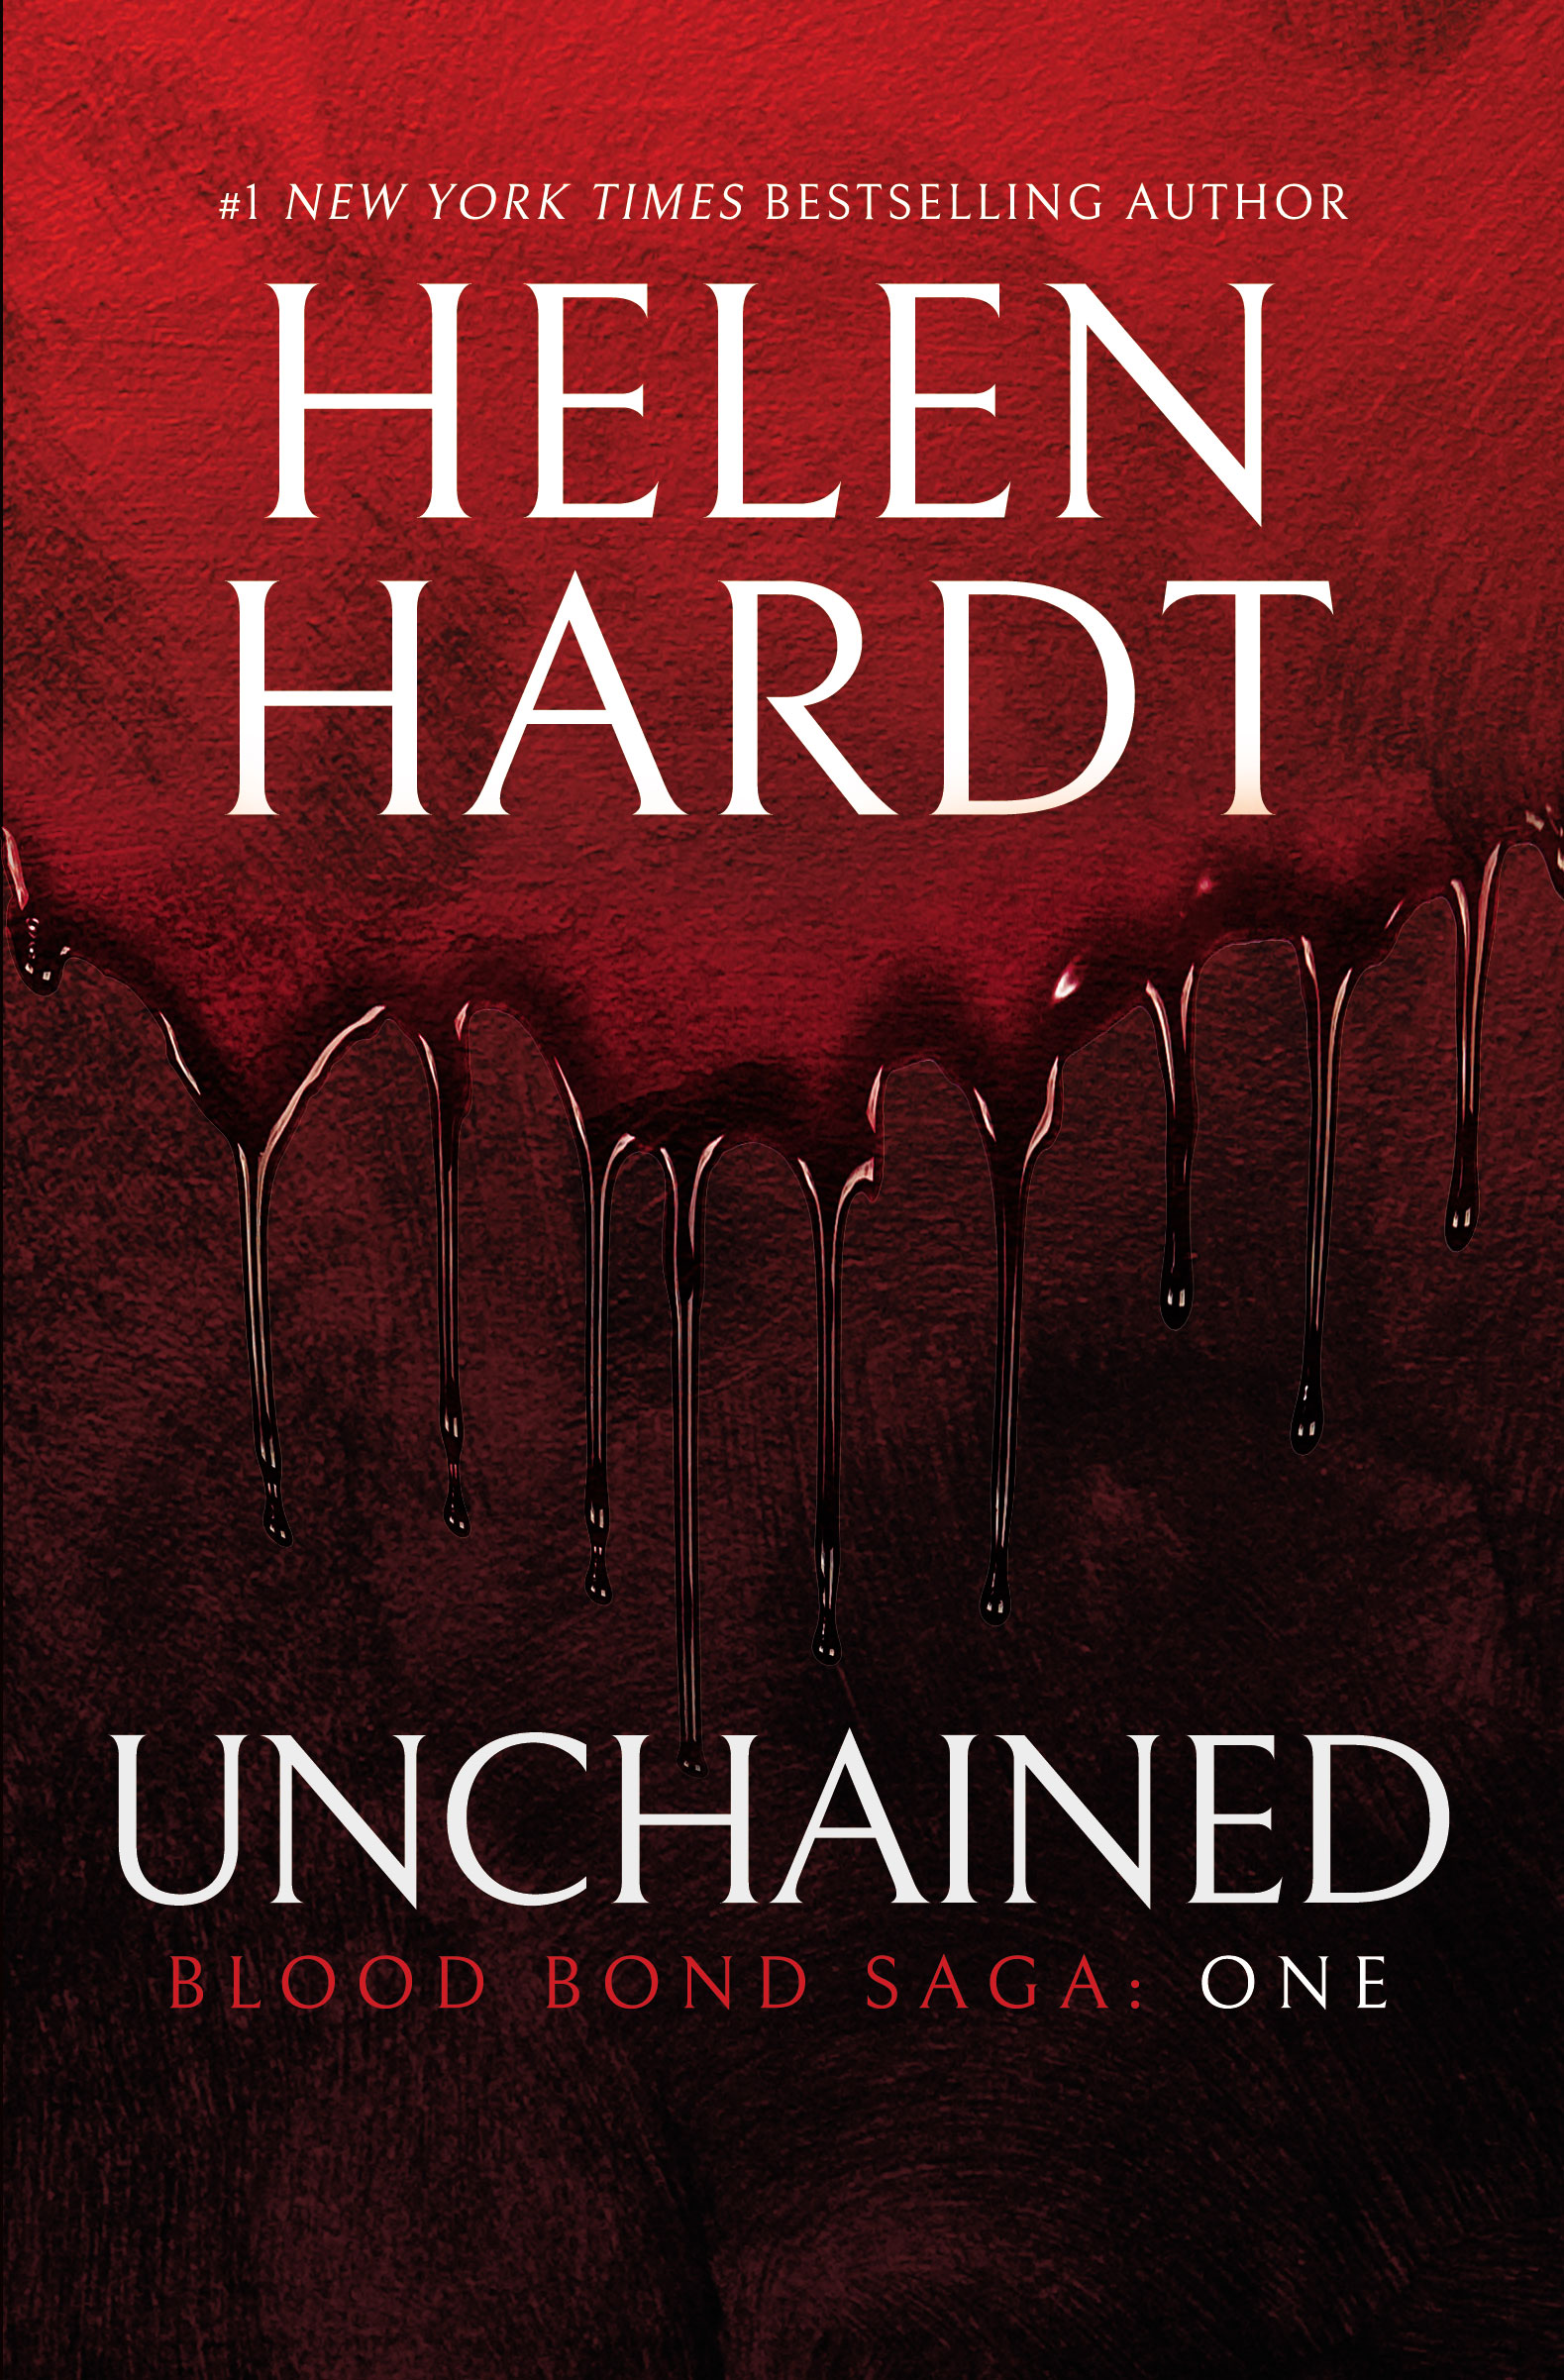 Image result for helen hardt unchained series